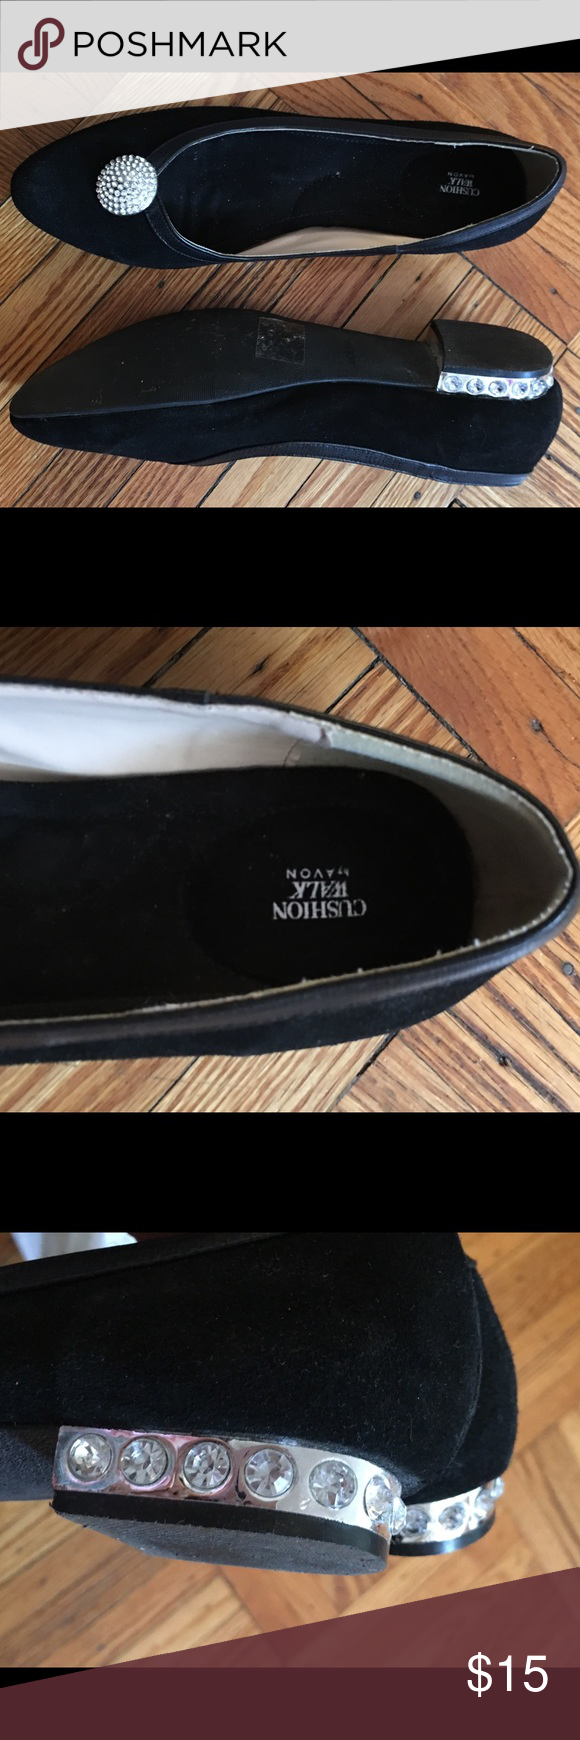 Avon Cushion Walk crystal flats! Gorgeous suede crystal flats! One crystal in heel missing on interior not visible. Size 11. Used once indoors. Please message with any questions :) Avon Shoes Flats & Loafers